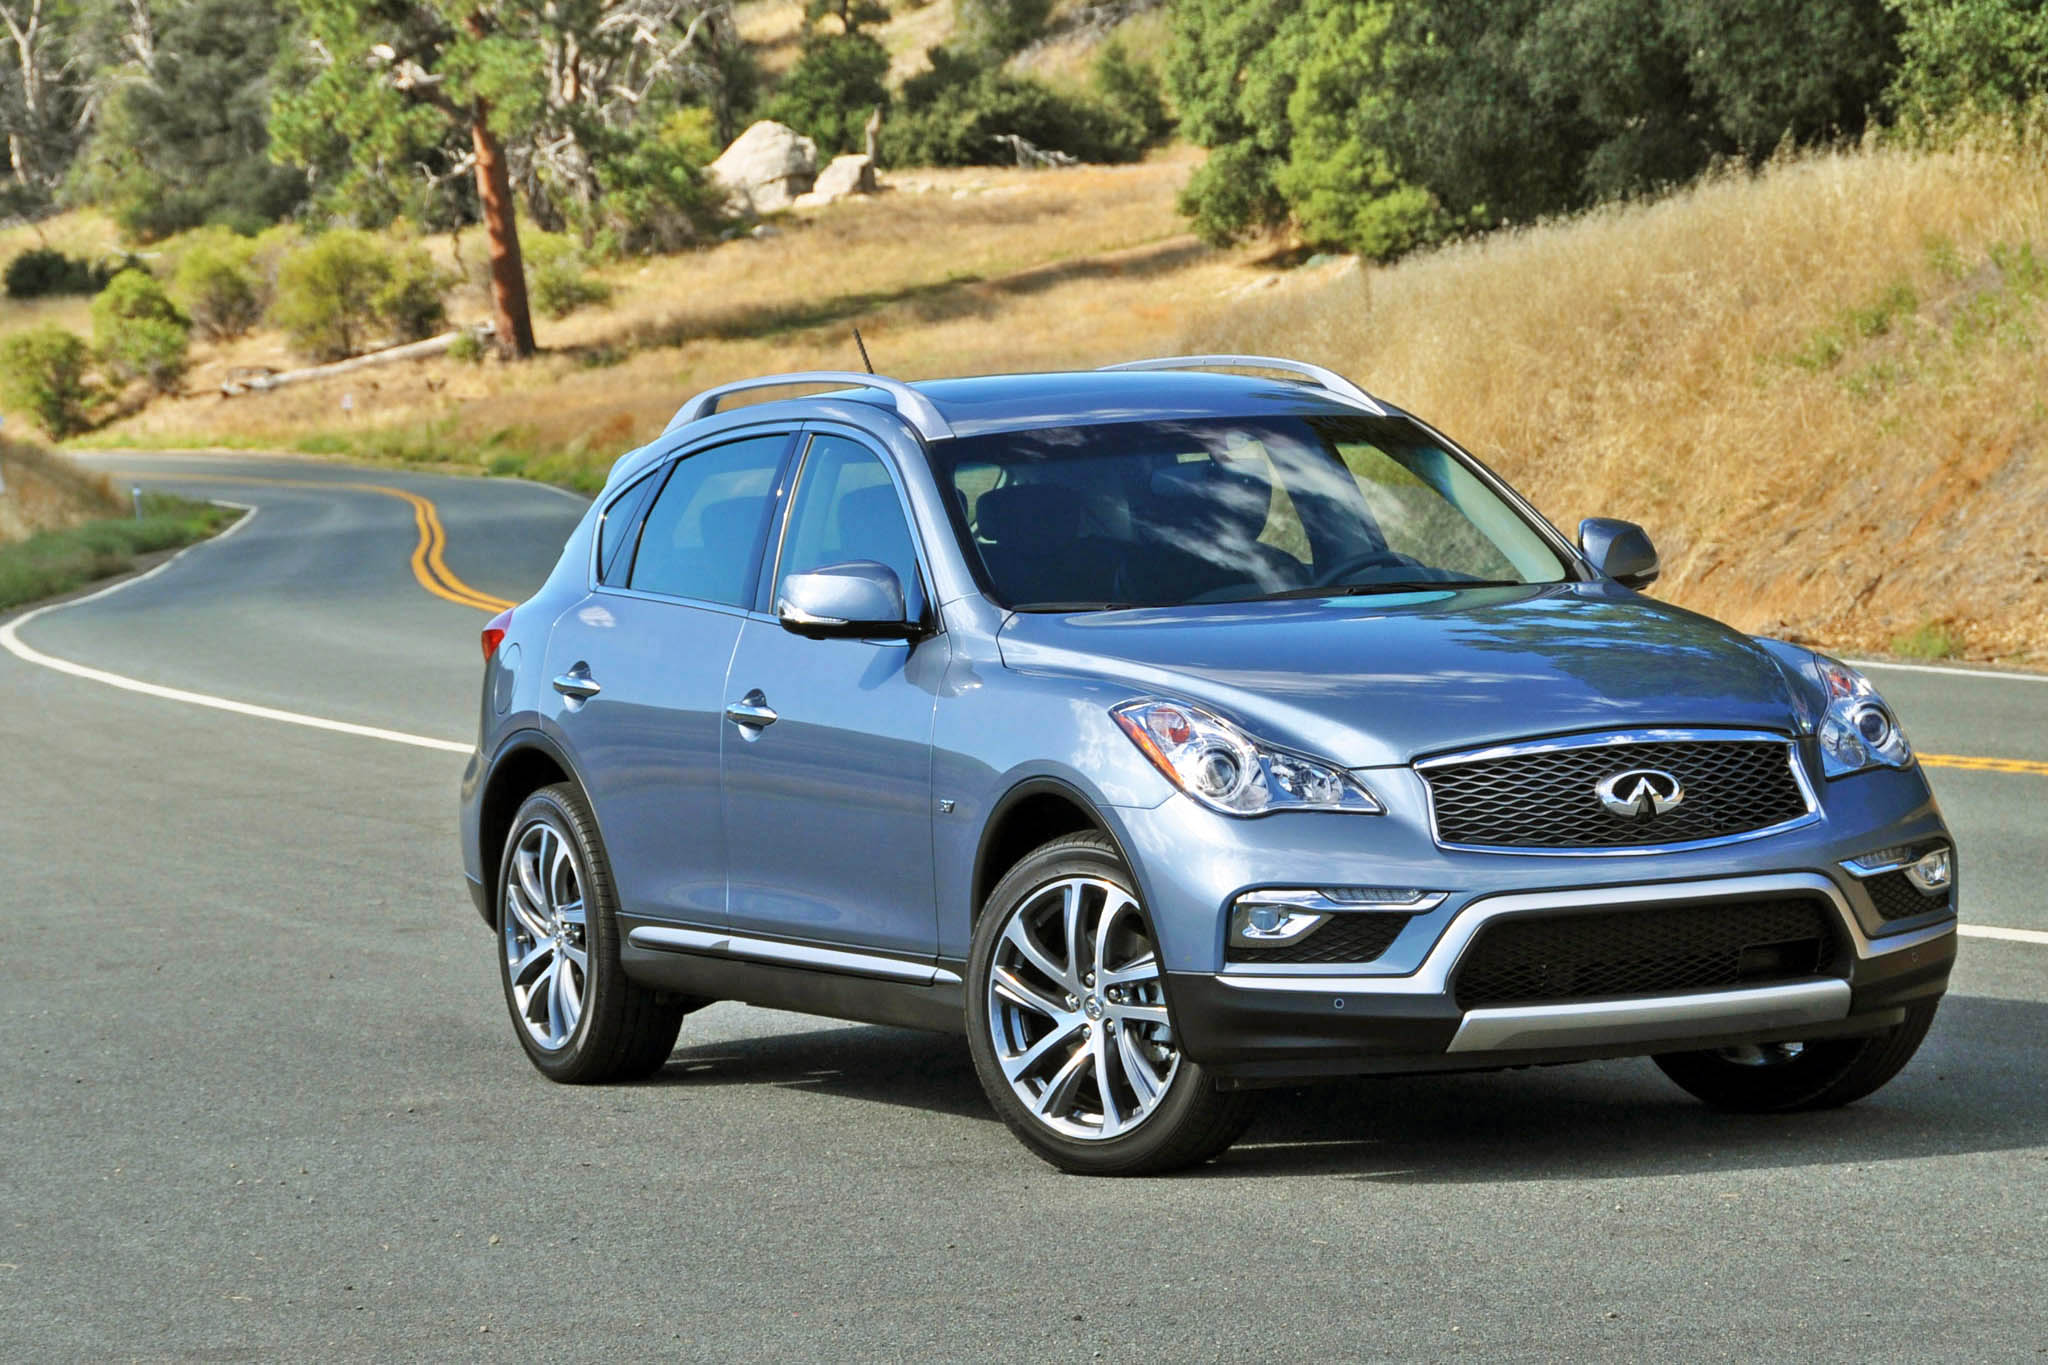 Infiniti knows that its revamped QX50 is simply a better variation on